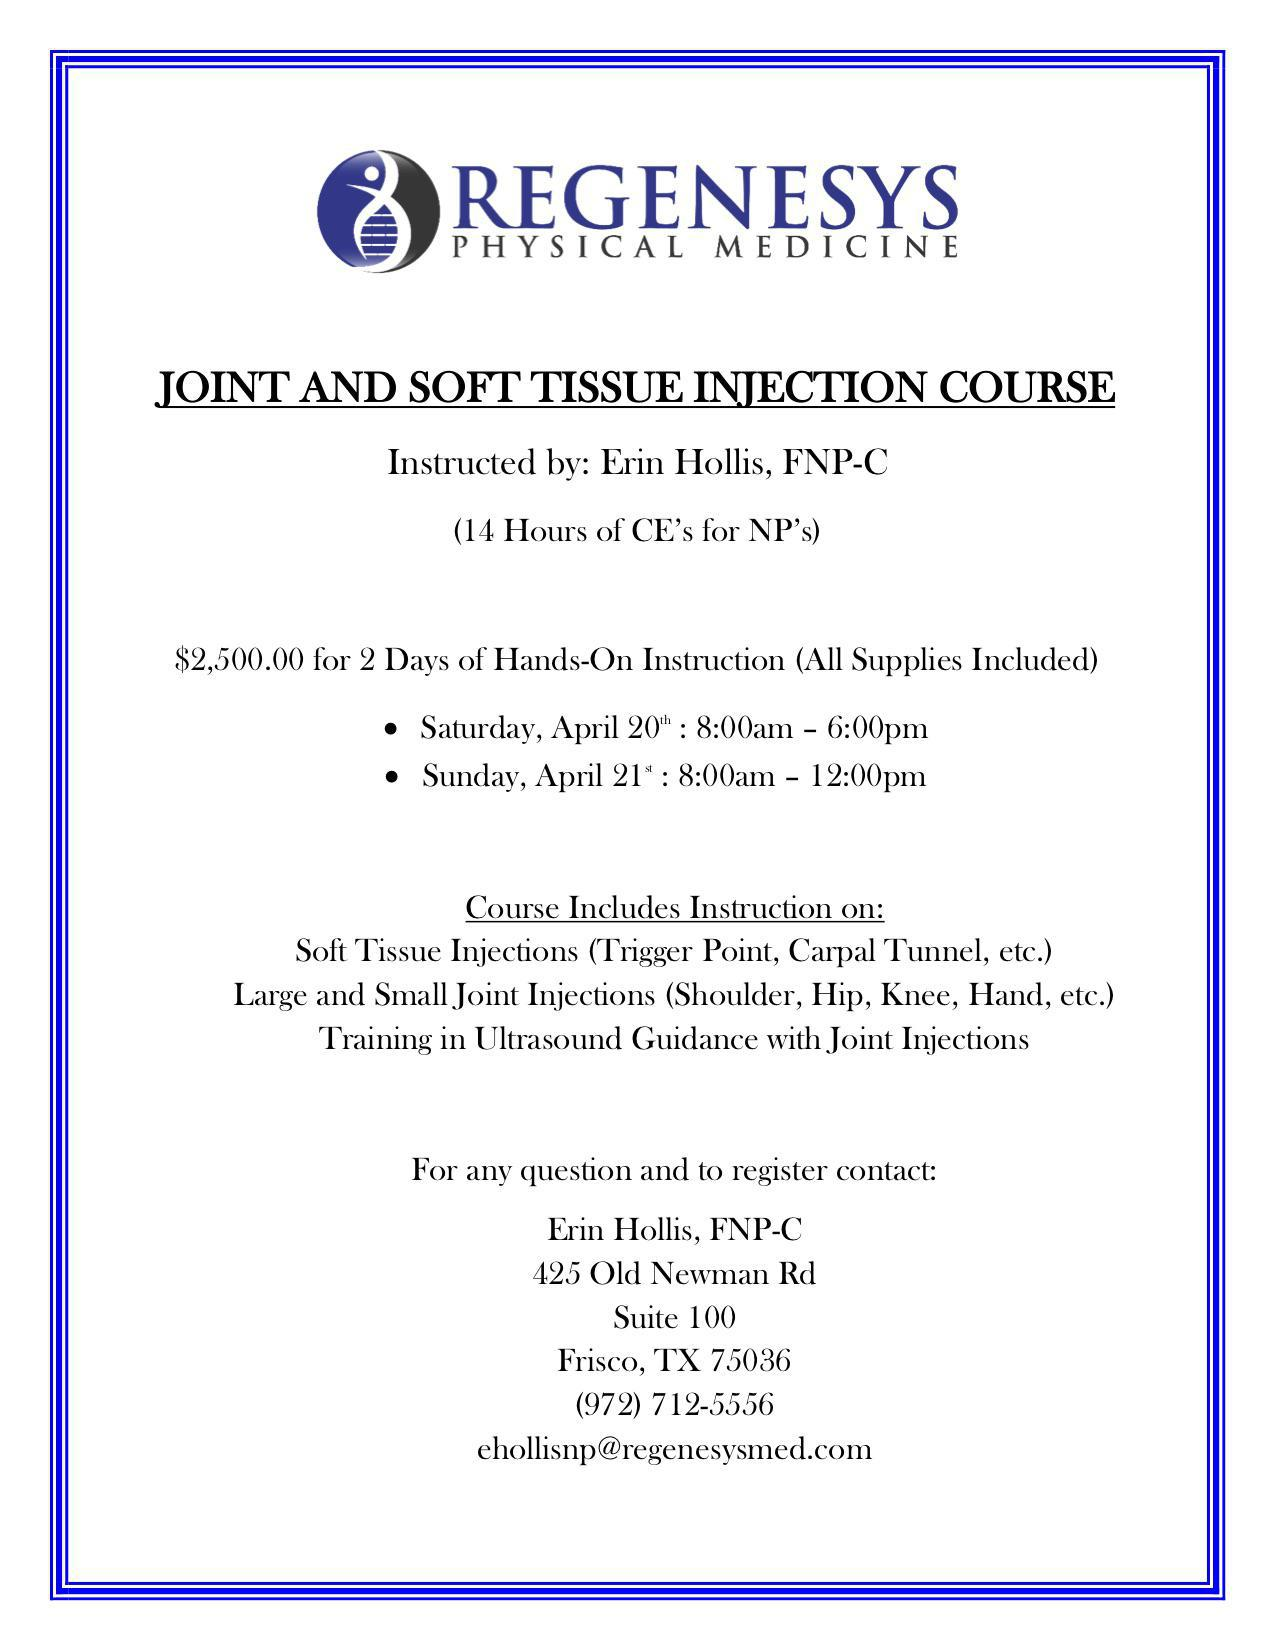 Joint Injection Course Flyer